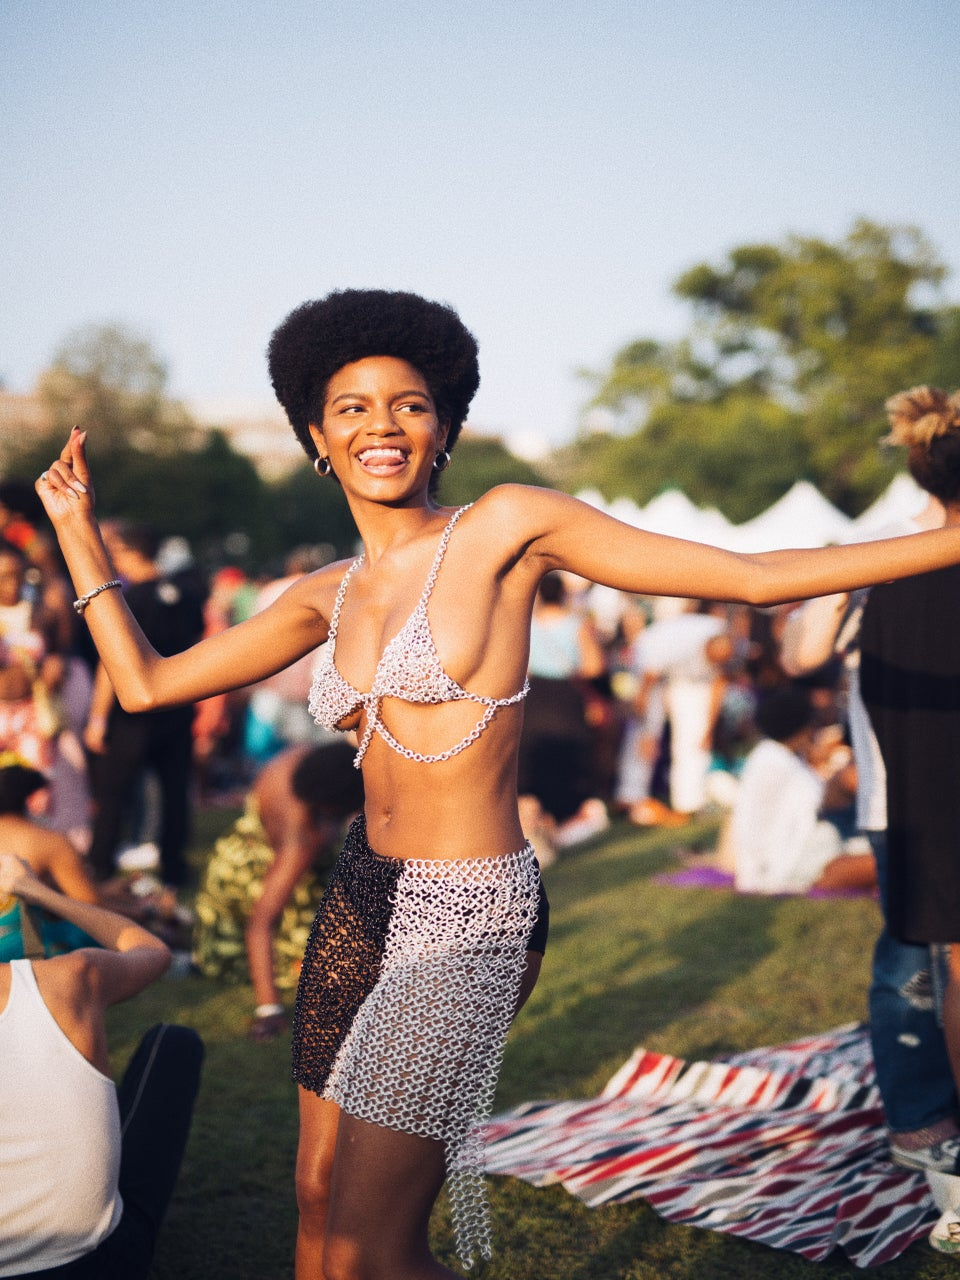 Model Ebonee Davis On AfroPunk, Identity And The Importance Of Creating Spaces To Celebrate Our Blackness